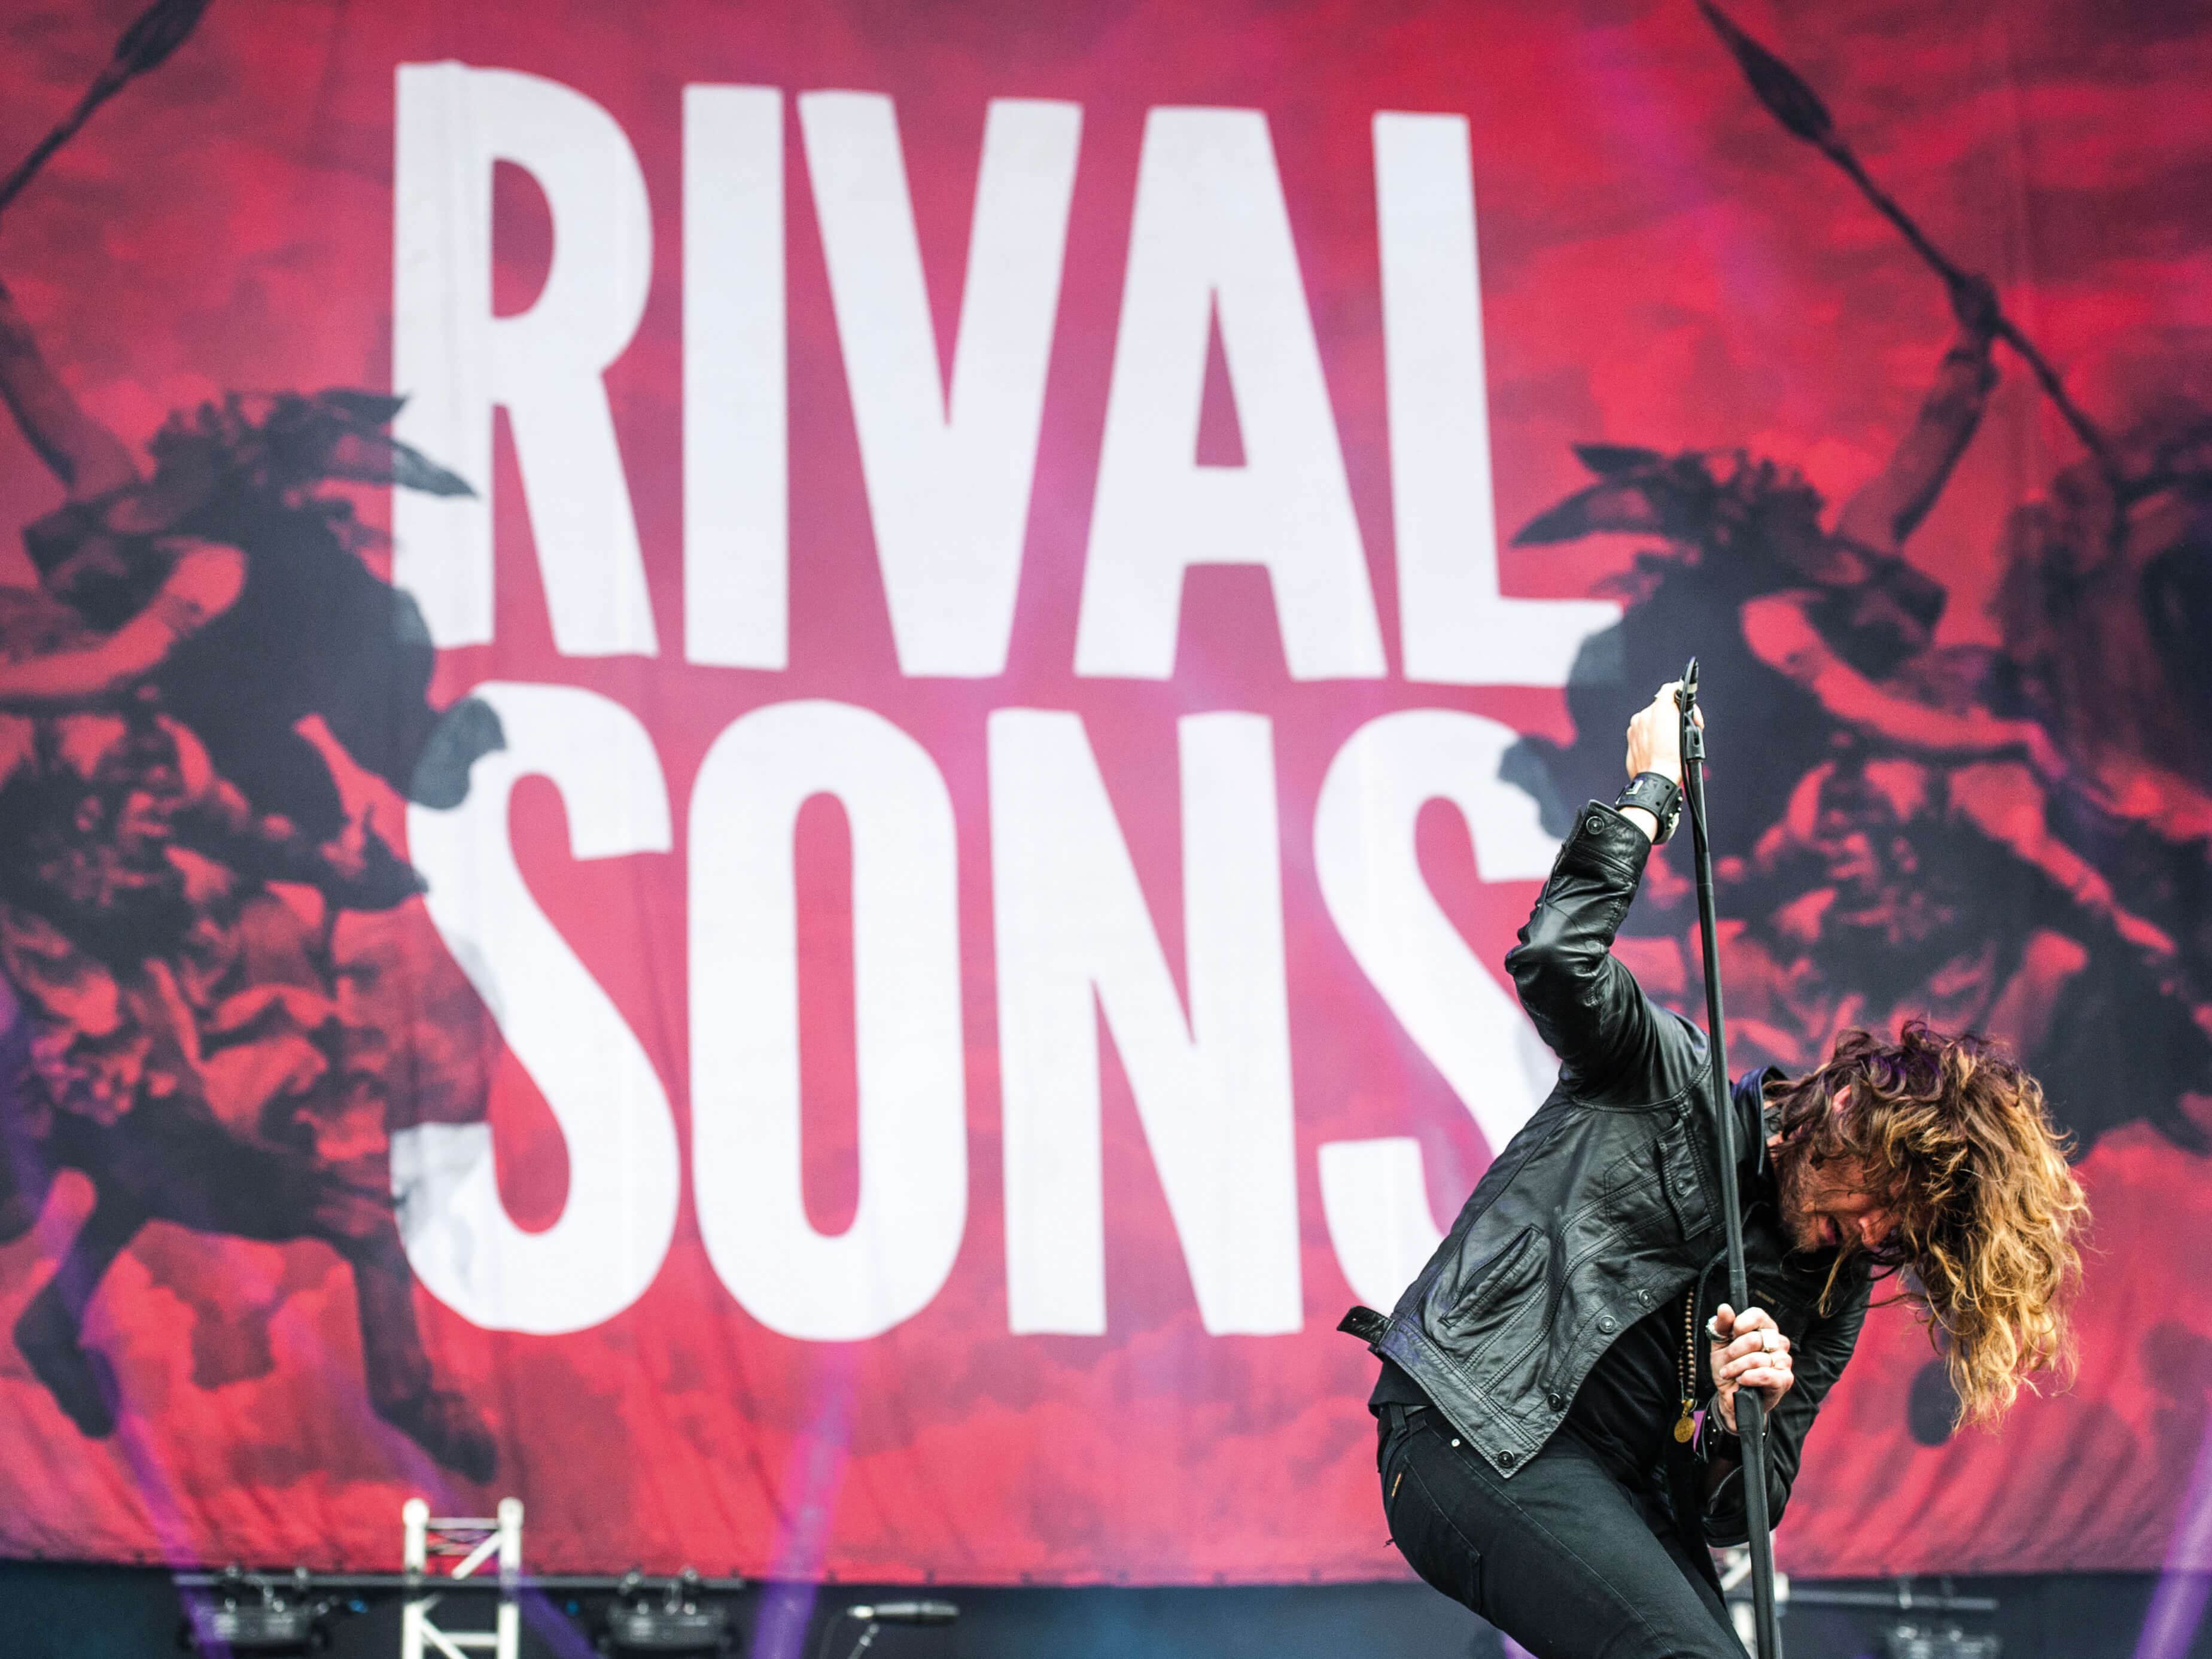 Rival Sons Jay Buchanan on stage